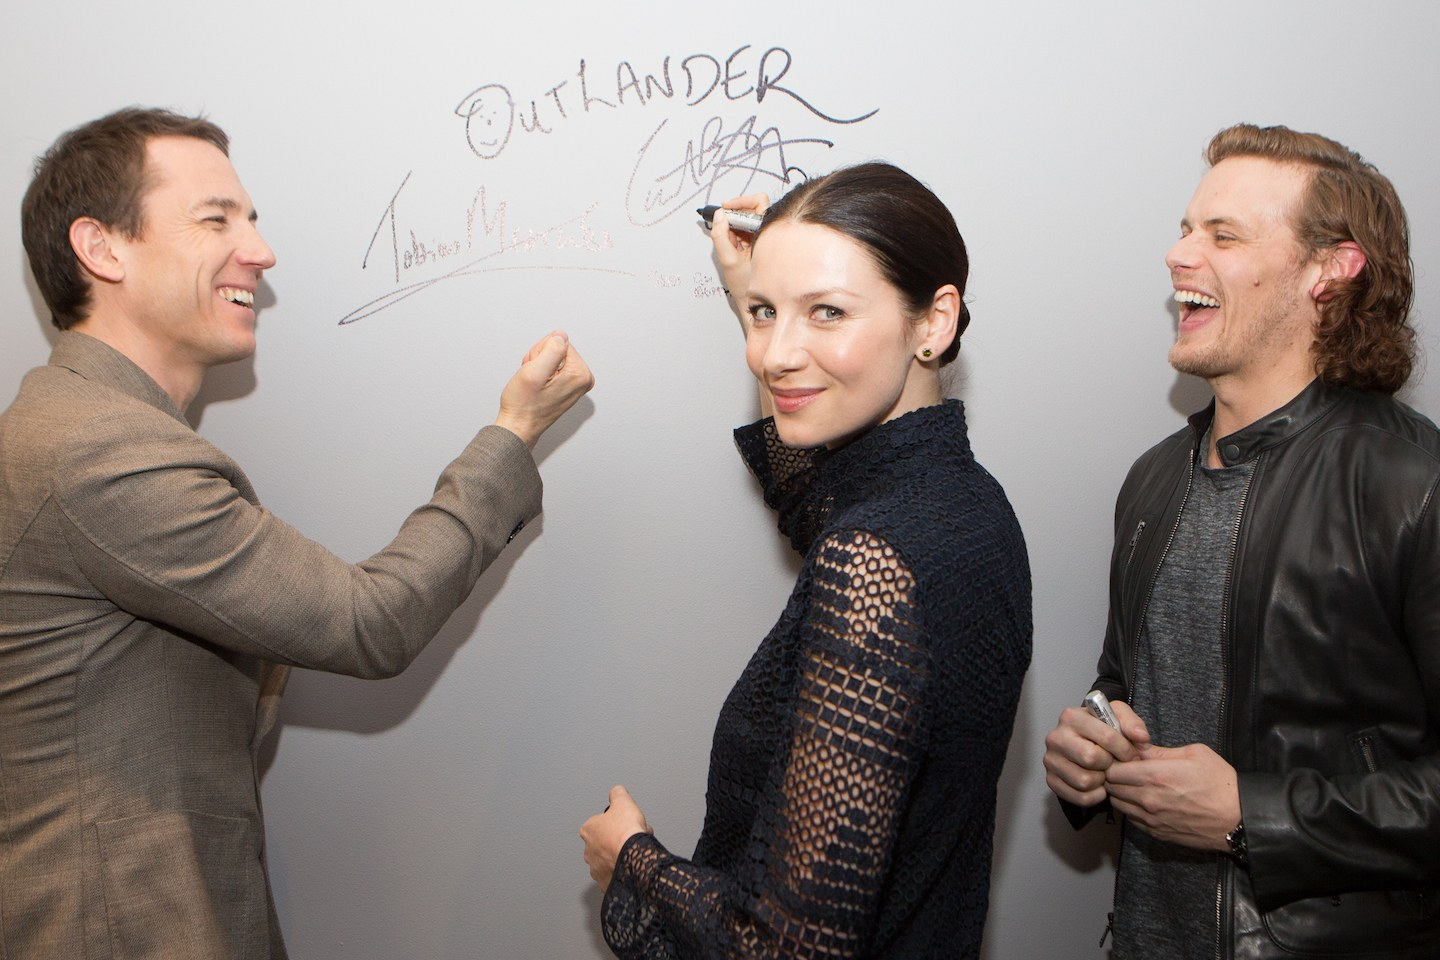 Caitriona Balfe Sex Scene. 2018-2019 celebrityes photos leaks! - 2019 year